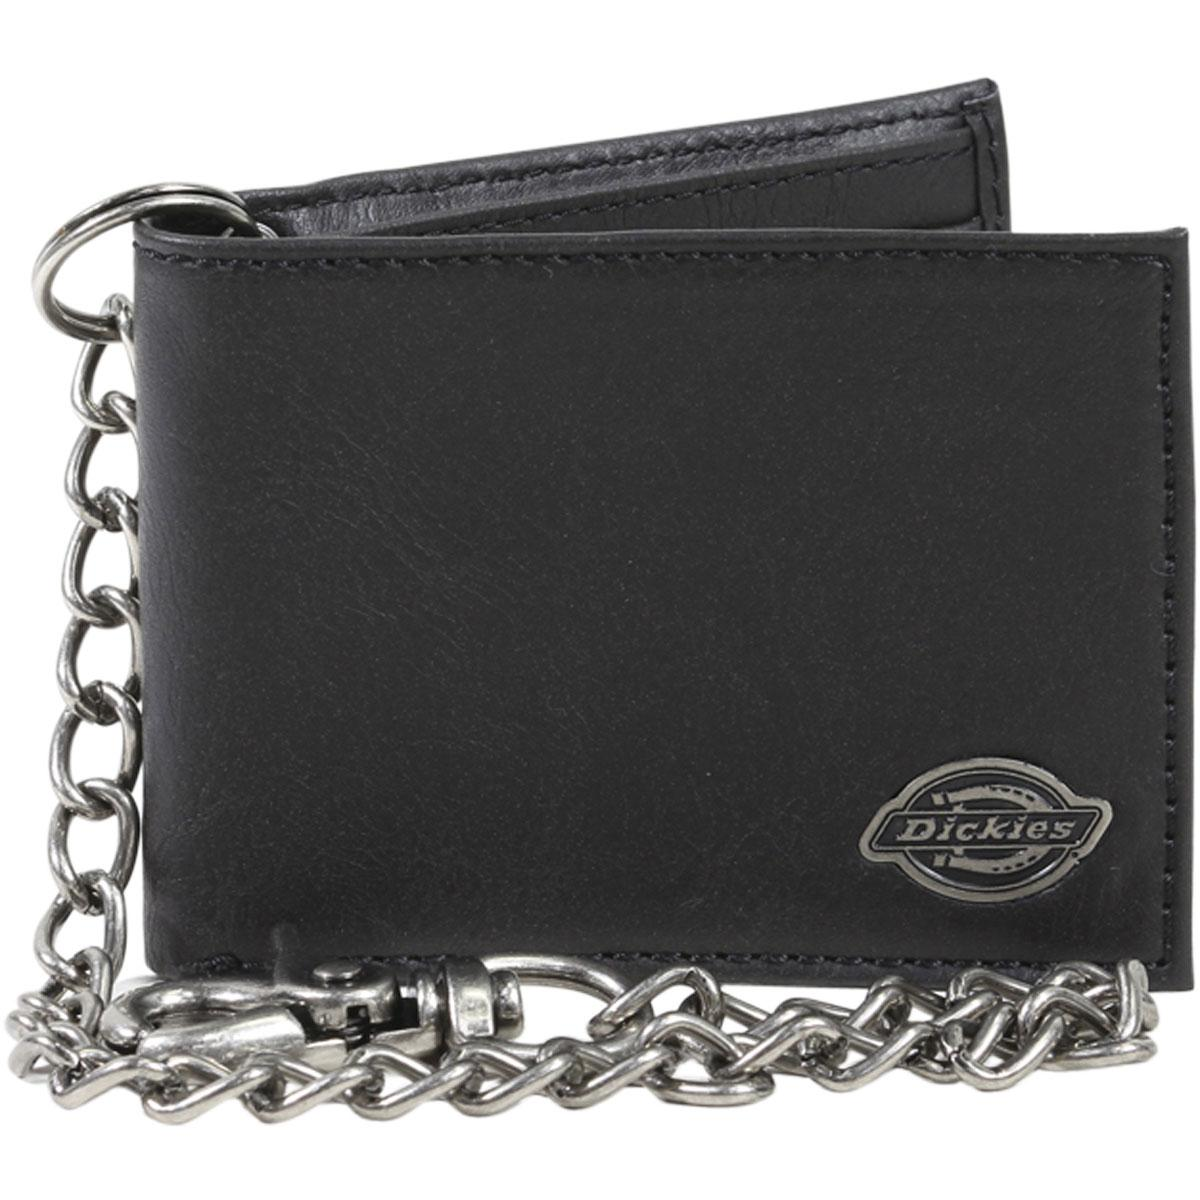 Image of Dickies Men's Bi Fold Chain Leather Wallet - Black